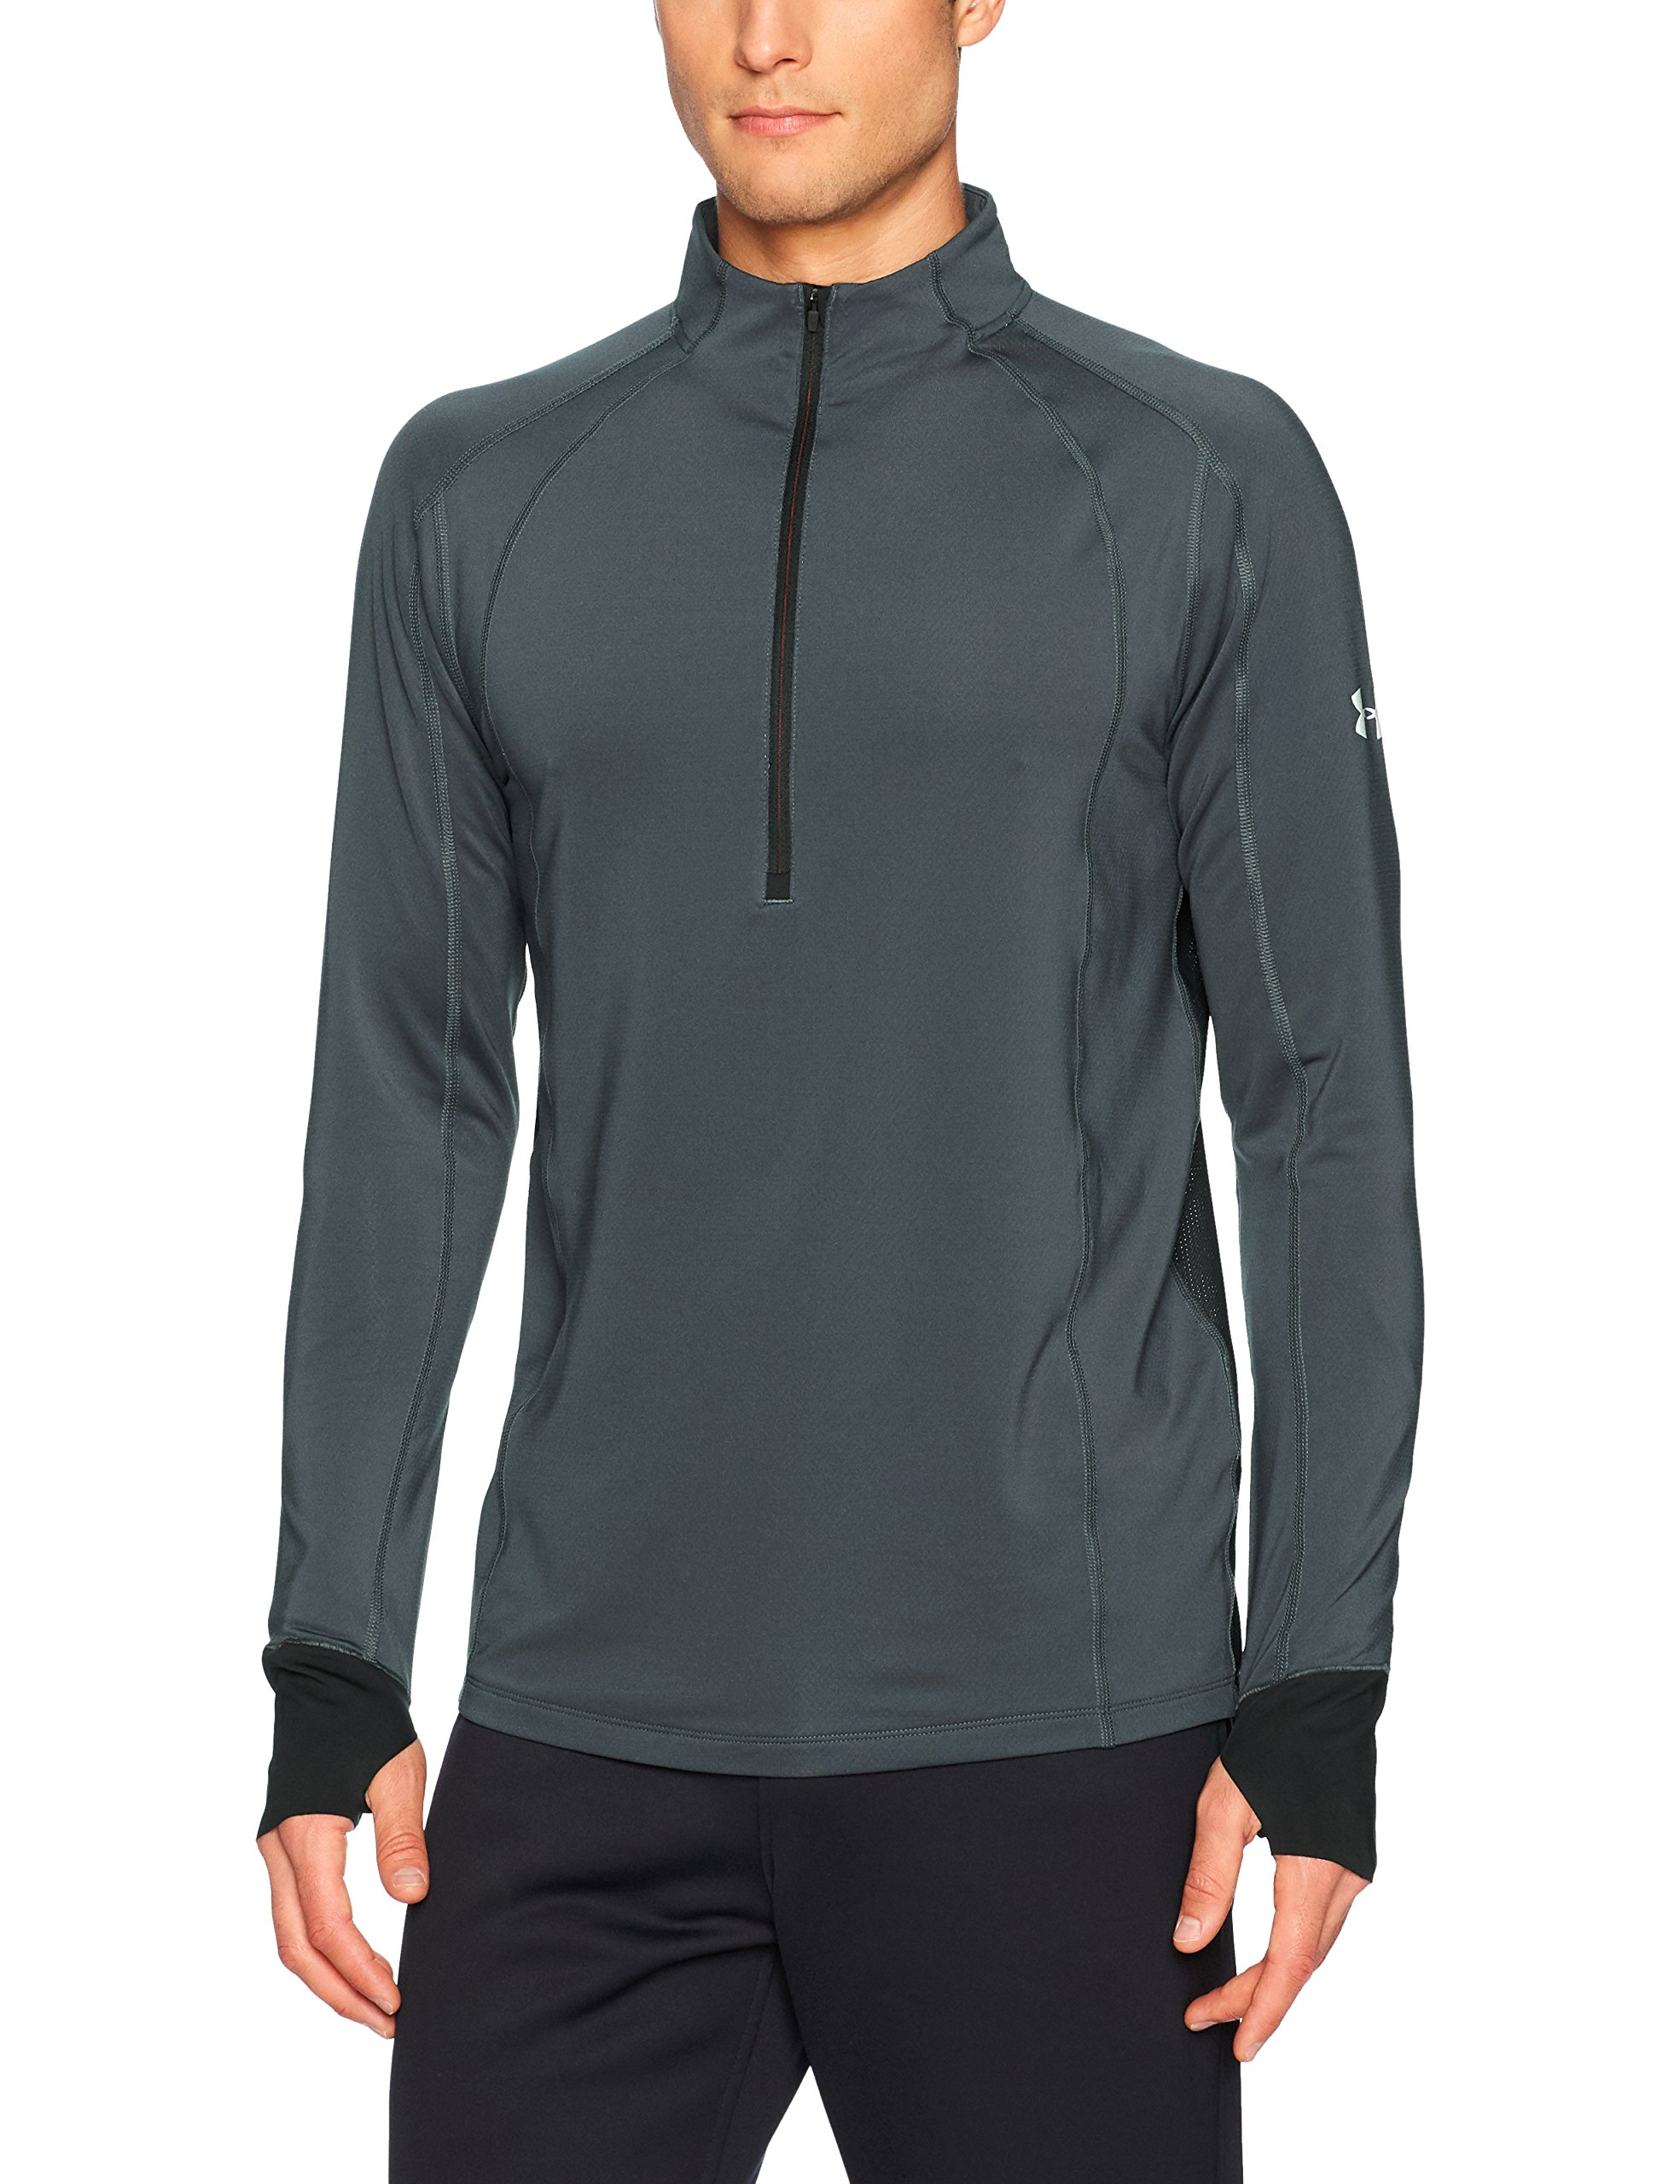 Under Armour Men's ColdGear Reactor Run ½ Zip,Stealth Gray (008)/Reflective, Small